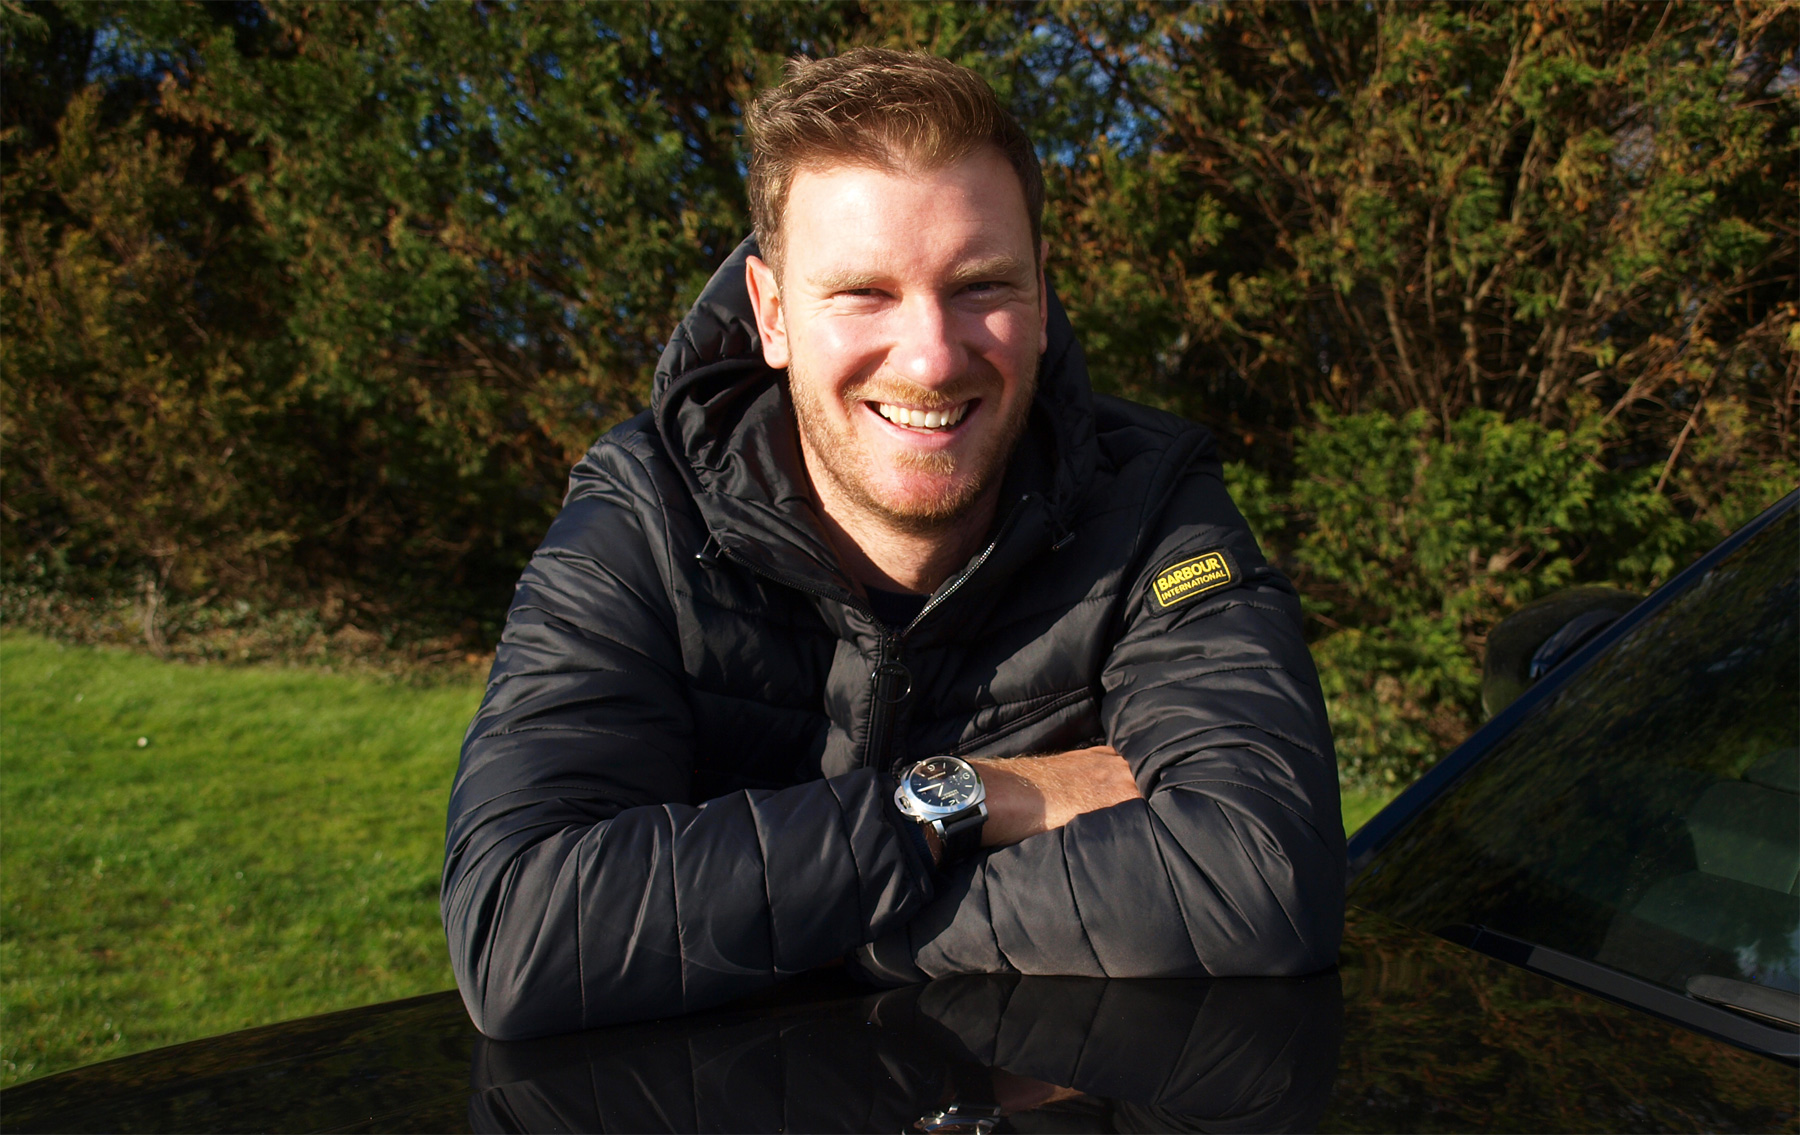 Interview With Chris Wood, Professional Golfer